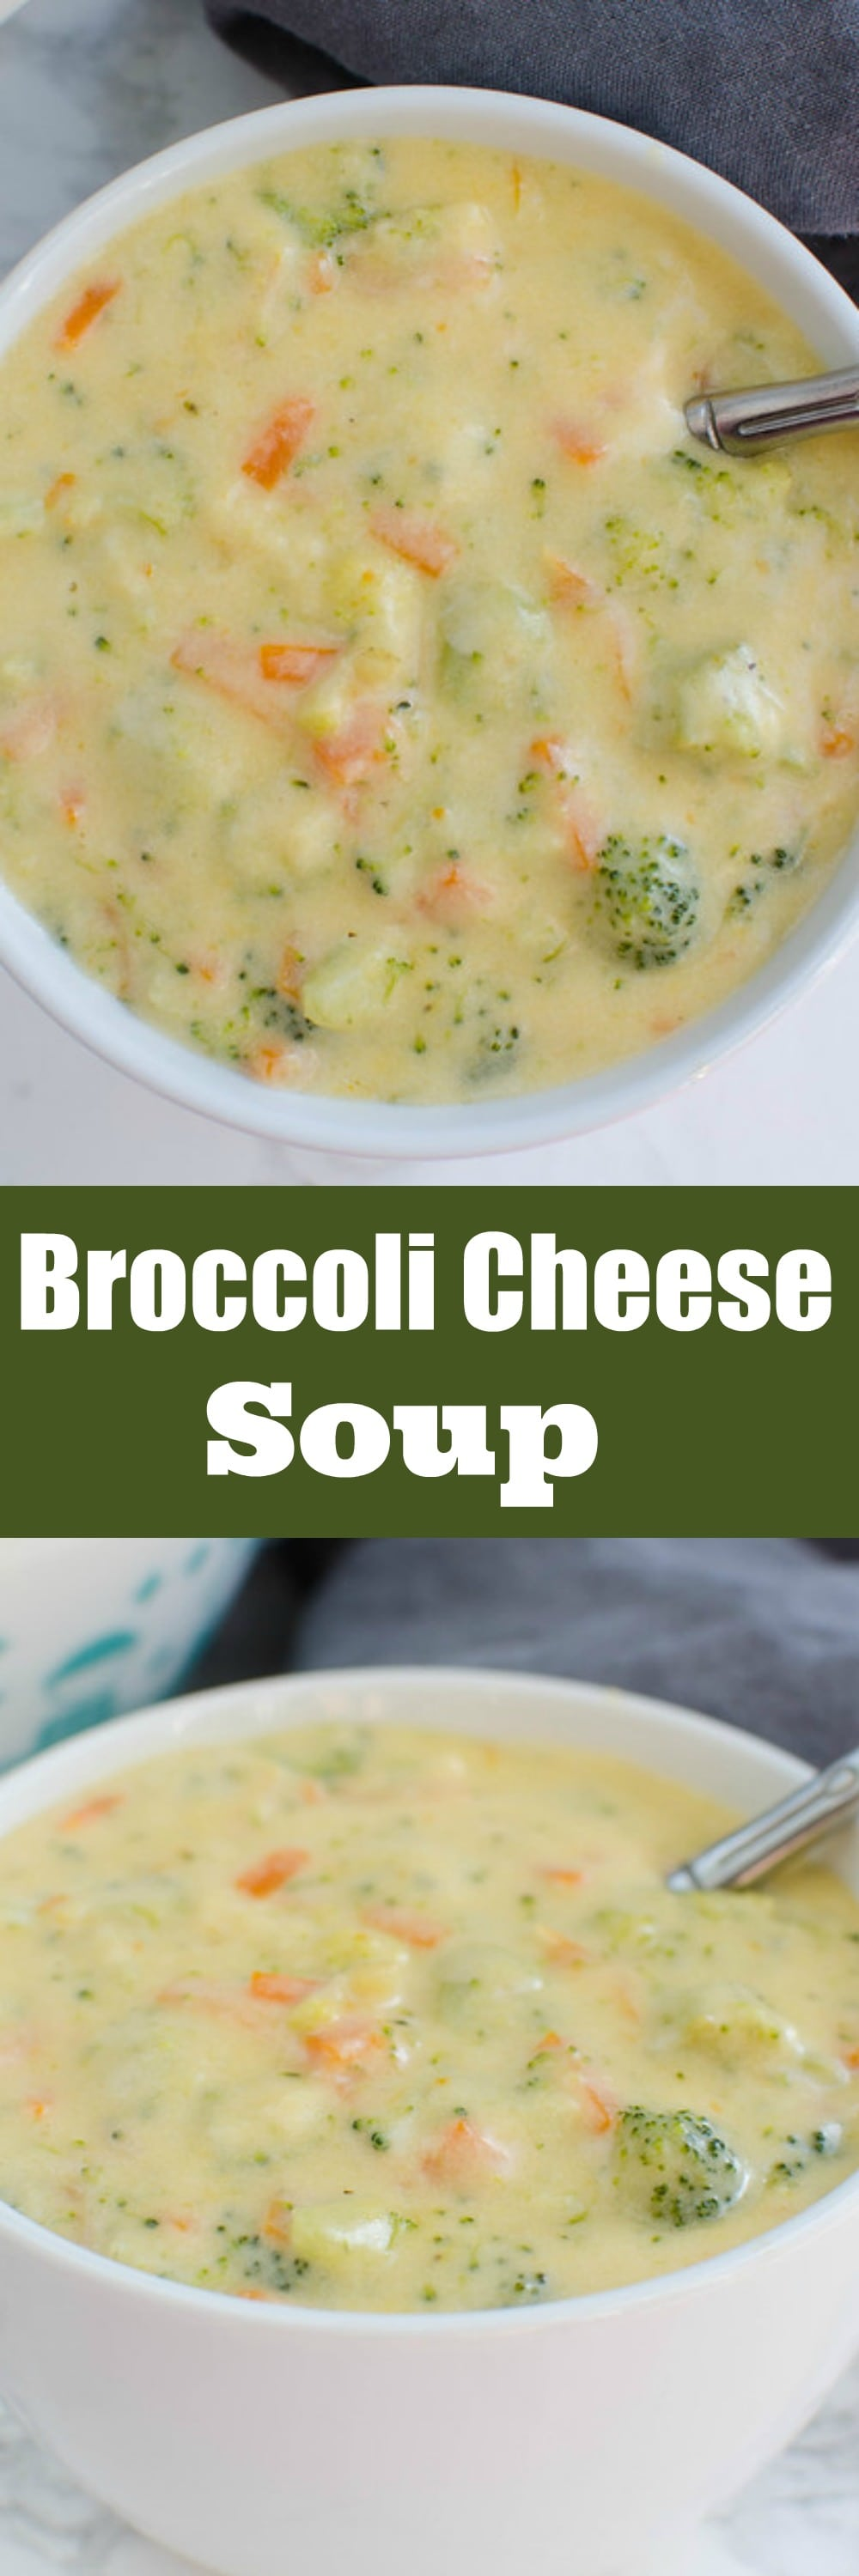 Broccoli Cheddar Soup - easy kid-friendly soup! A creamy soup with broccoli, carrots, and cheddar cheese!